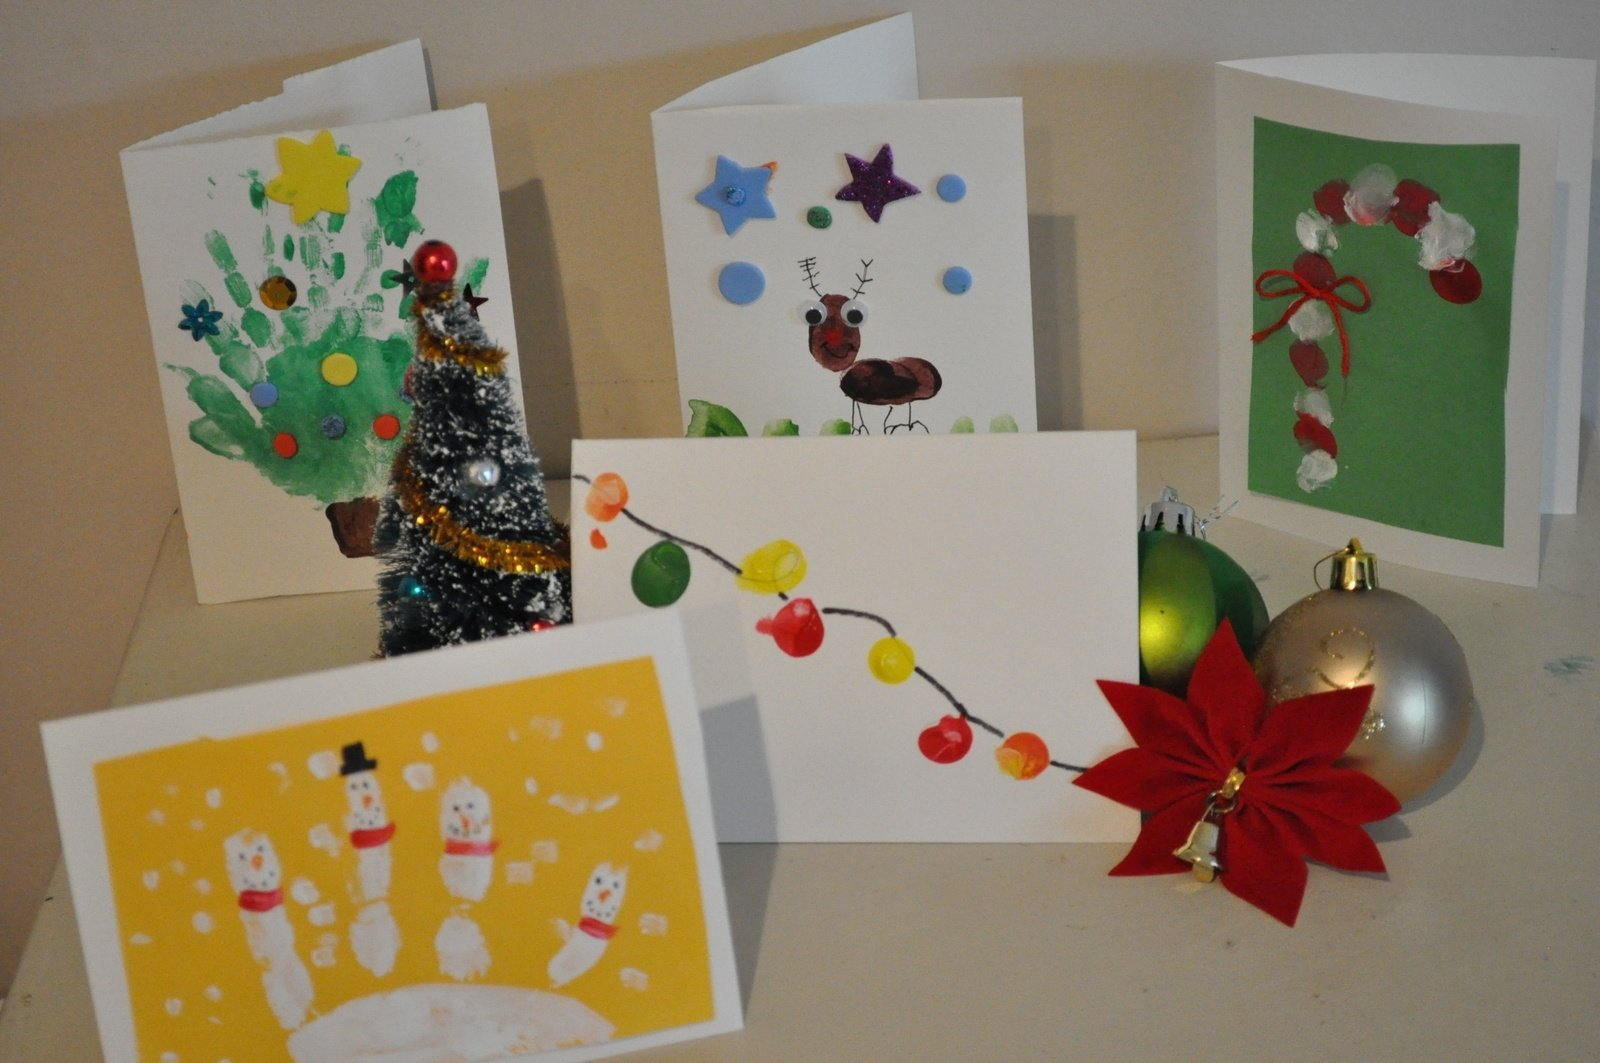 10 Attractive Christmas Card Ideas For Kids homemade christmas card ideas to do with kids e280a2 brisbane kids 3 2021